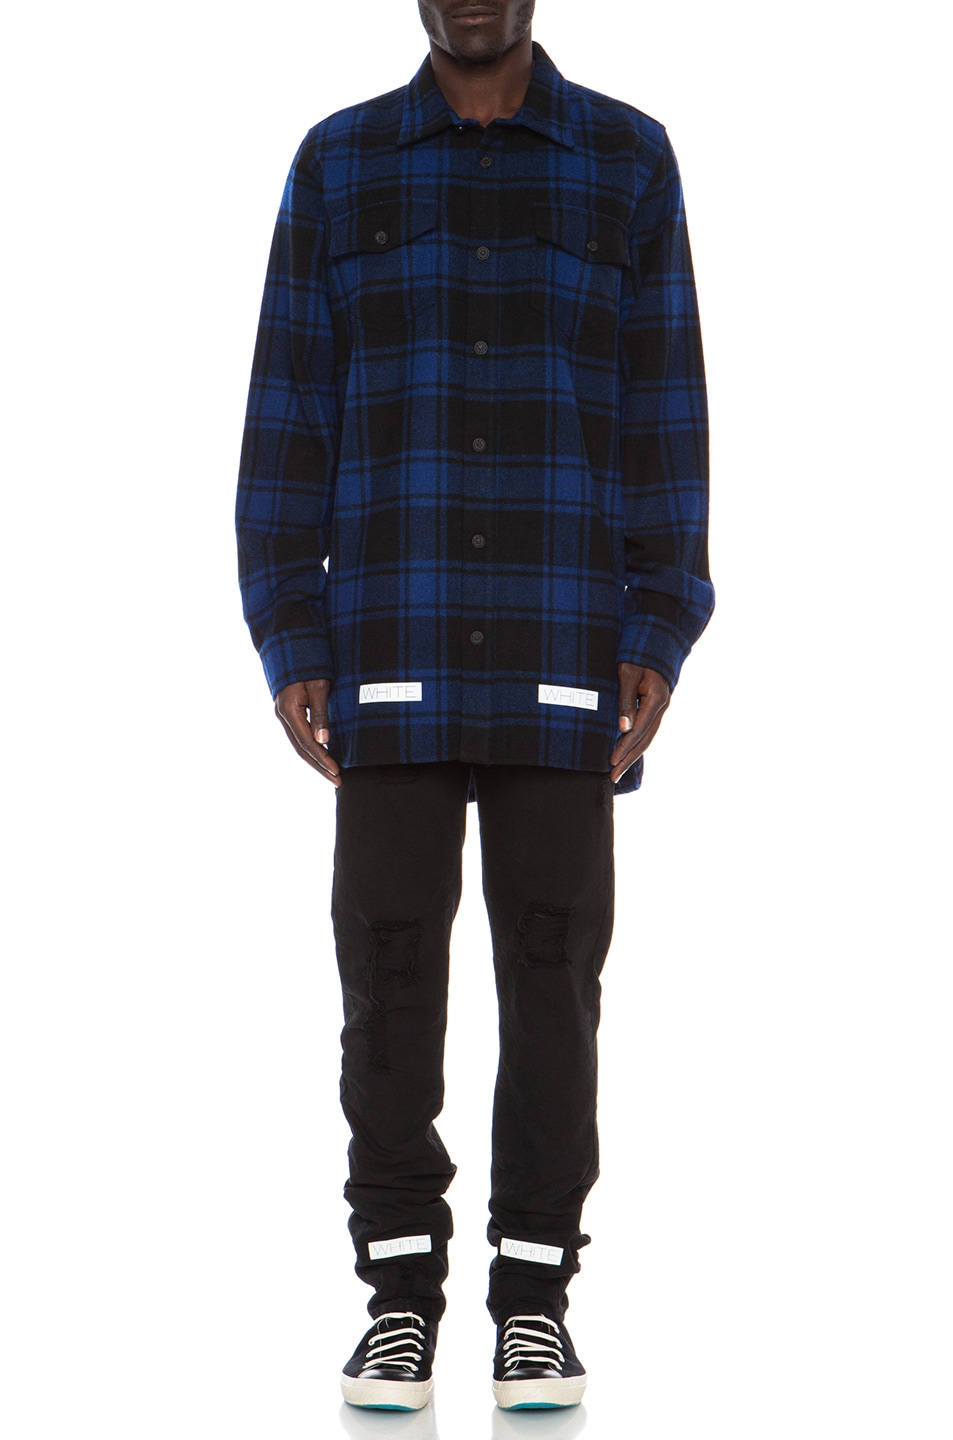 49fcc4434d7 Image 1 of OFF-WHITE Button Down Wool-Blend Flannel in Blue Check